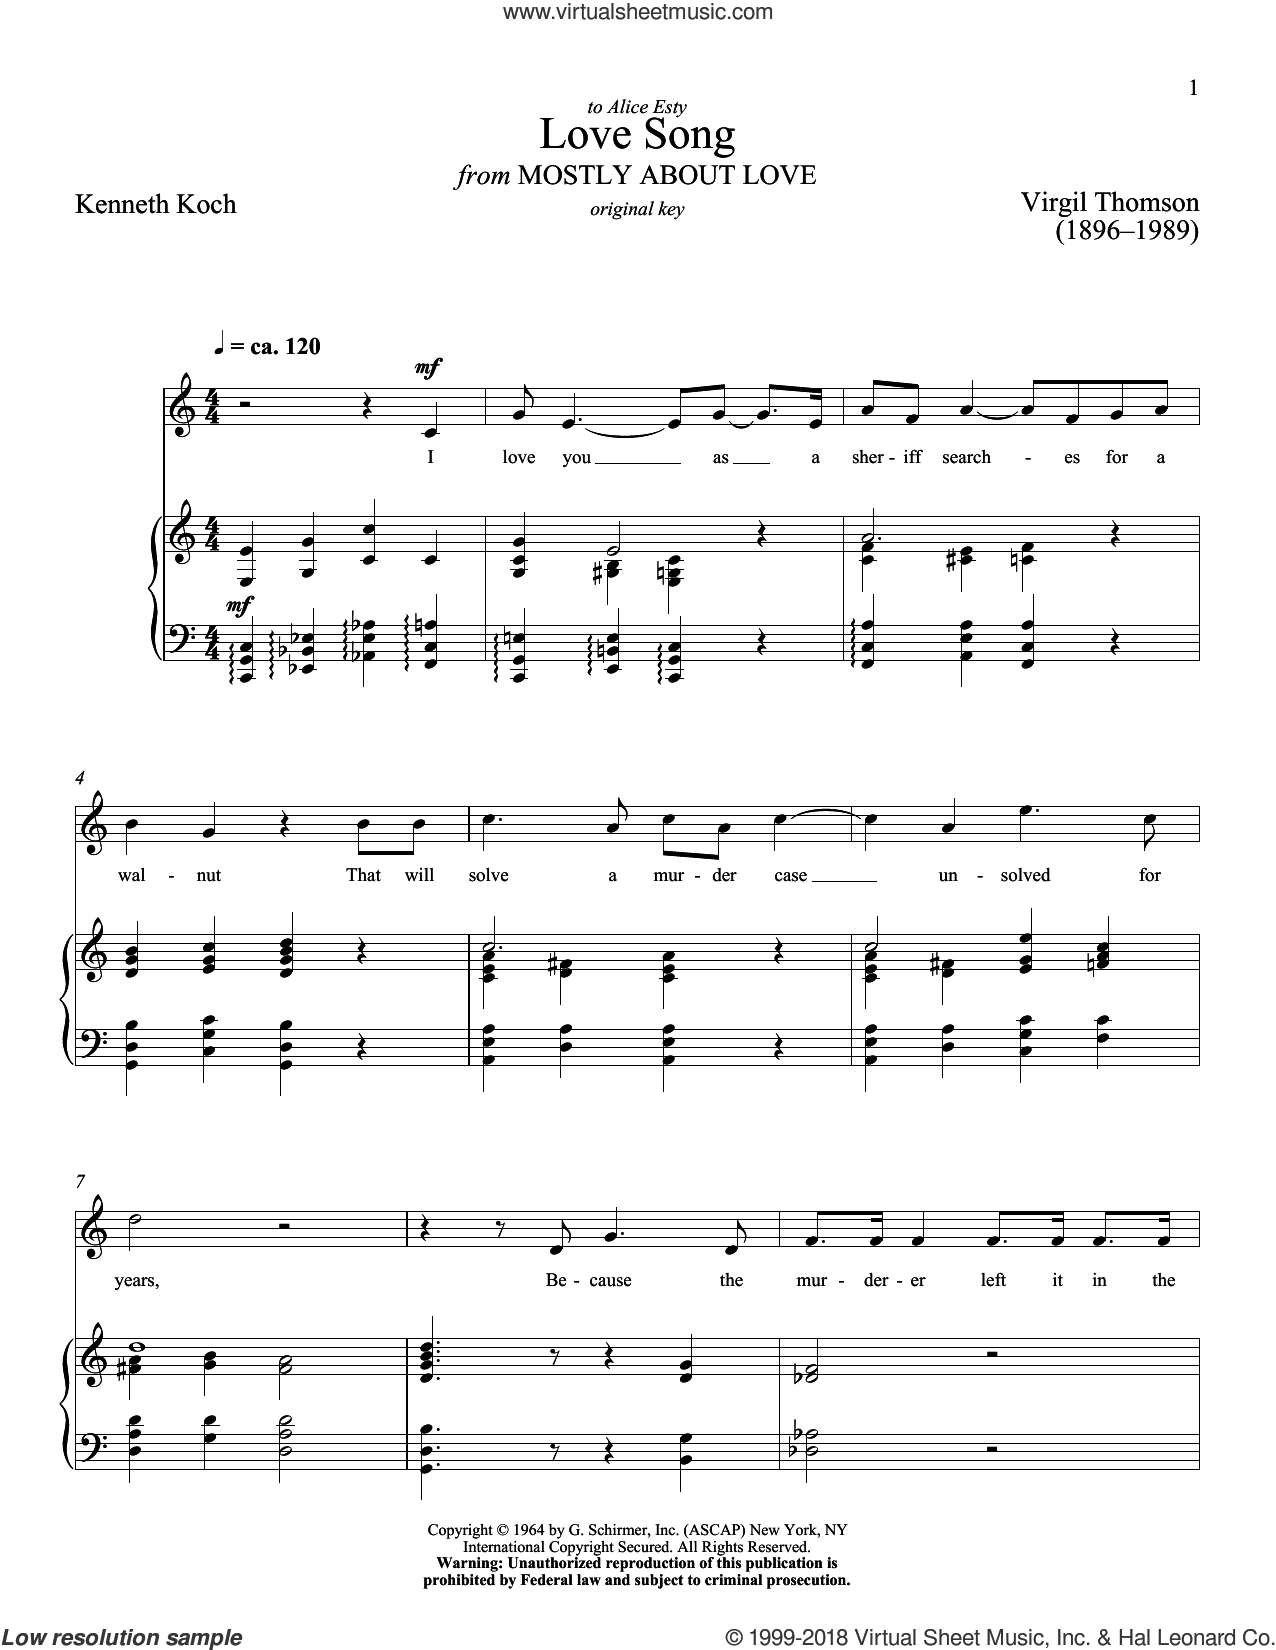 Love Song sheet music for voice and piano (High Voice) by Kenneth Koch, Richard Walters and Virgil Thomson, classical score, intermediate skill level